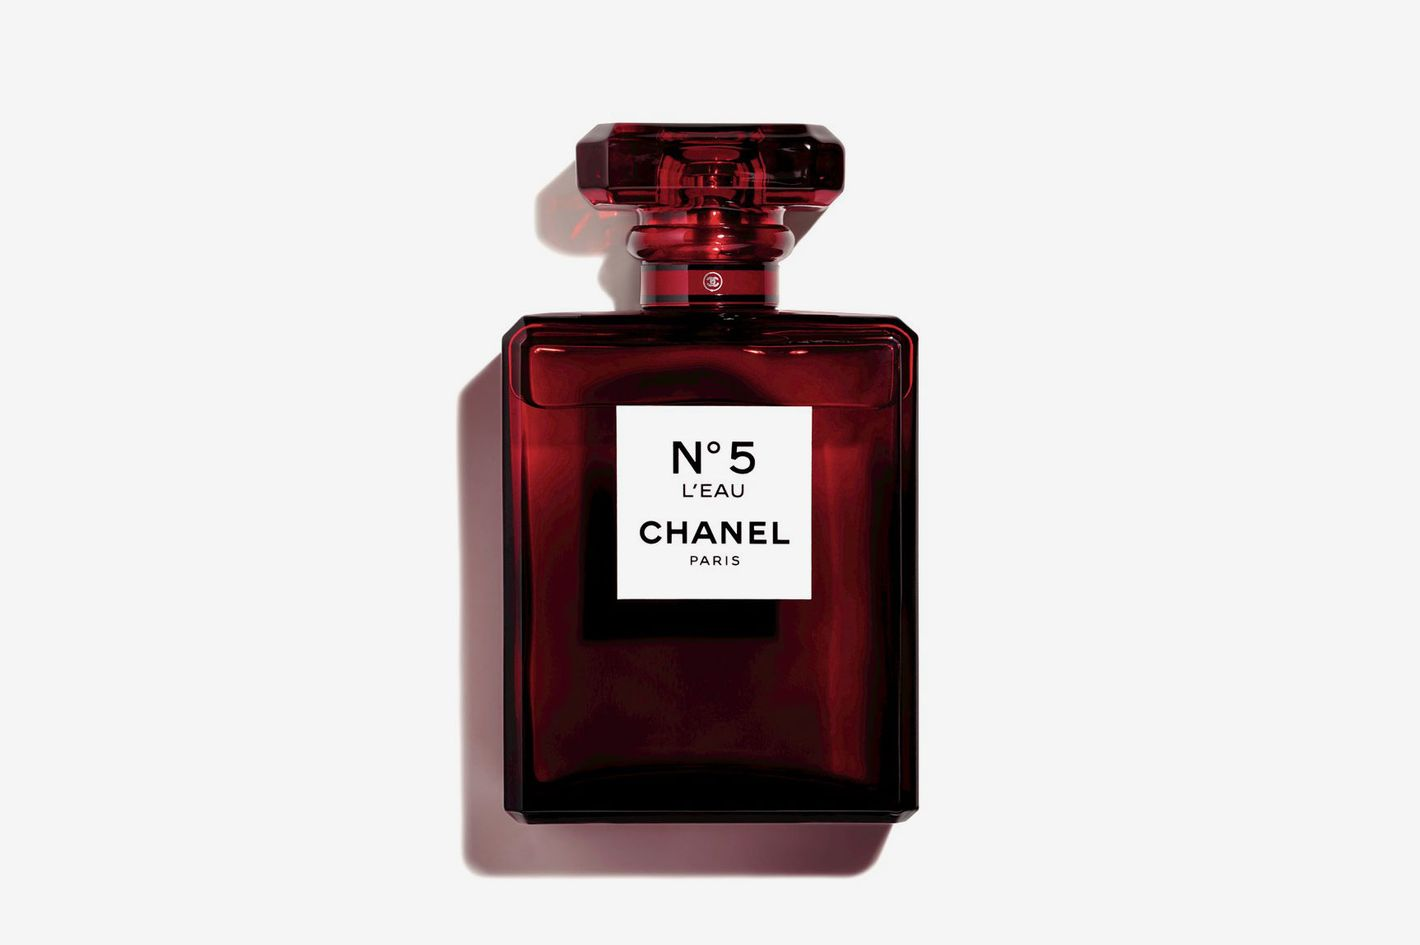 N°5 L'EAU Eau de Toilette Collector's Edition